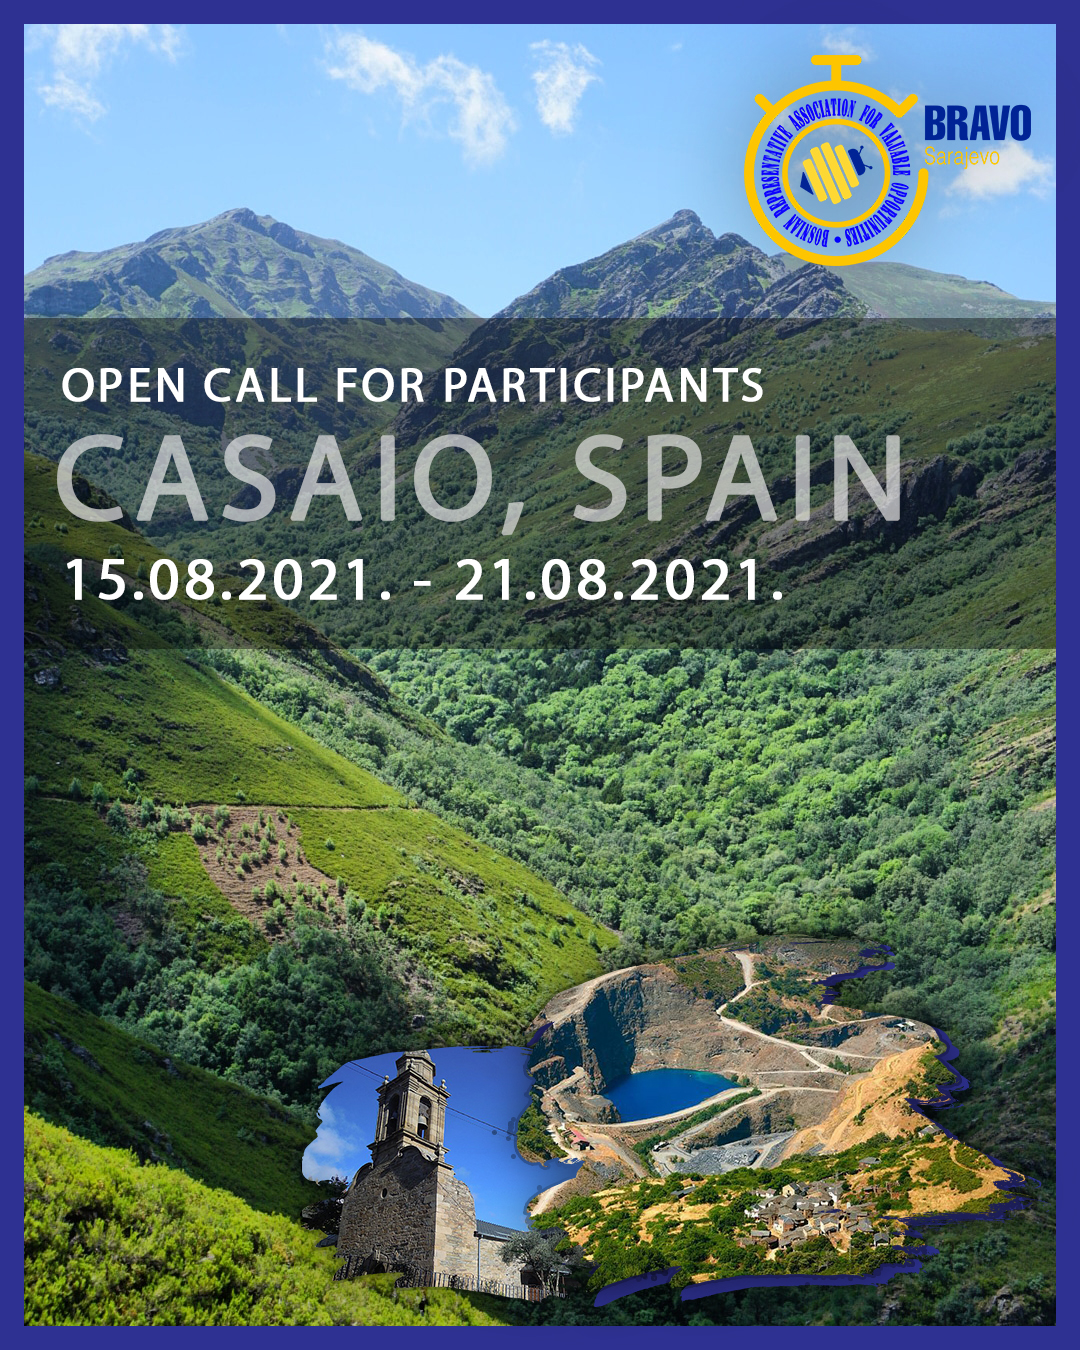 Open Call for 5 Participants from Bosnia and Herzegovina for Youth Exchange in Casaio, Spain